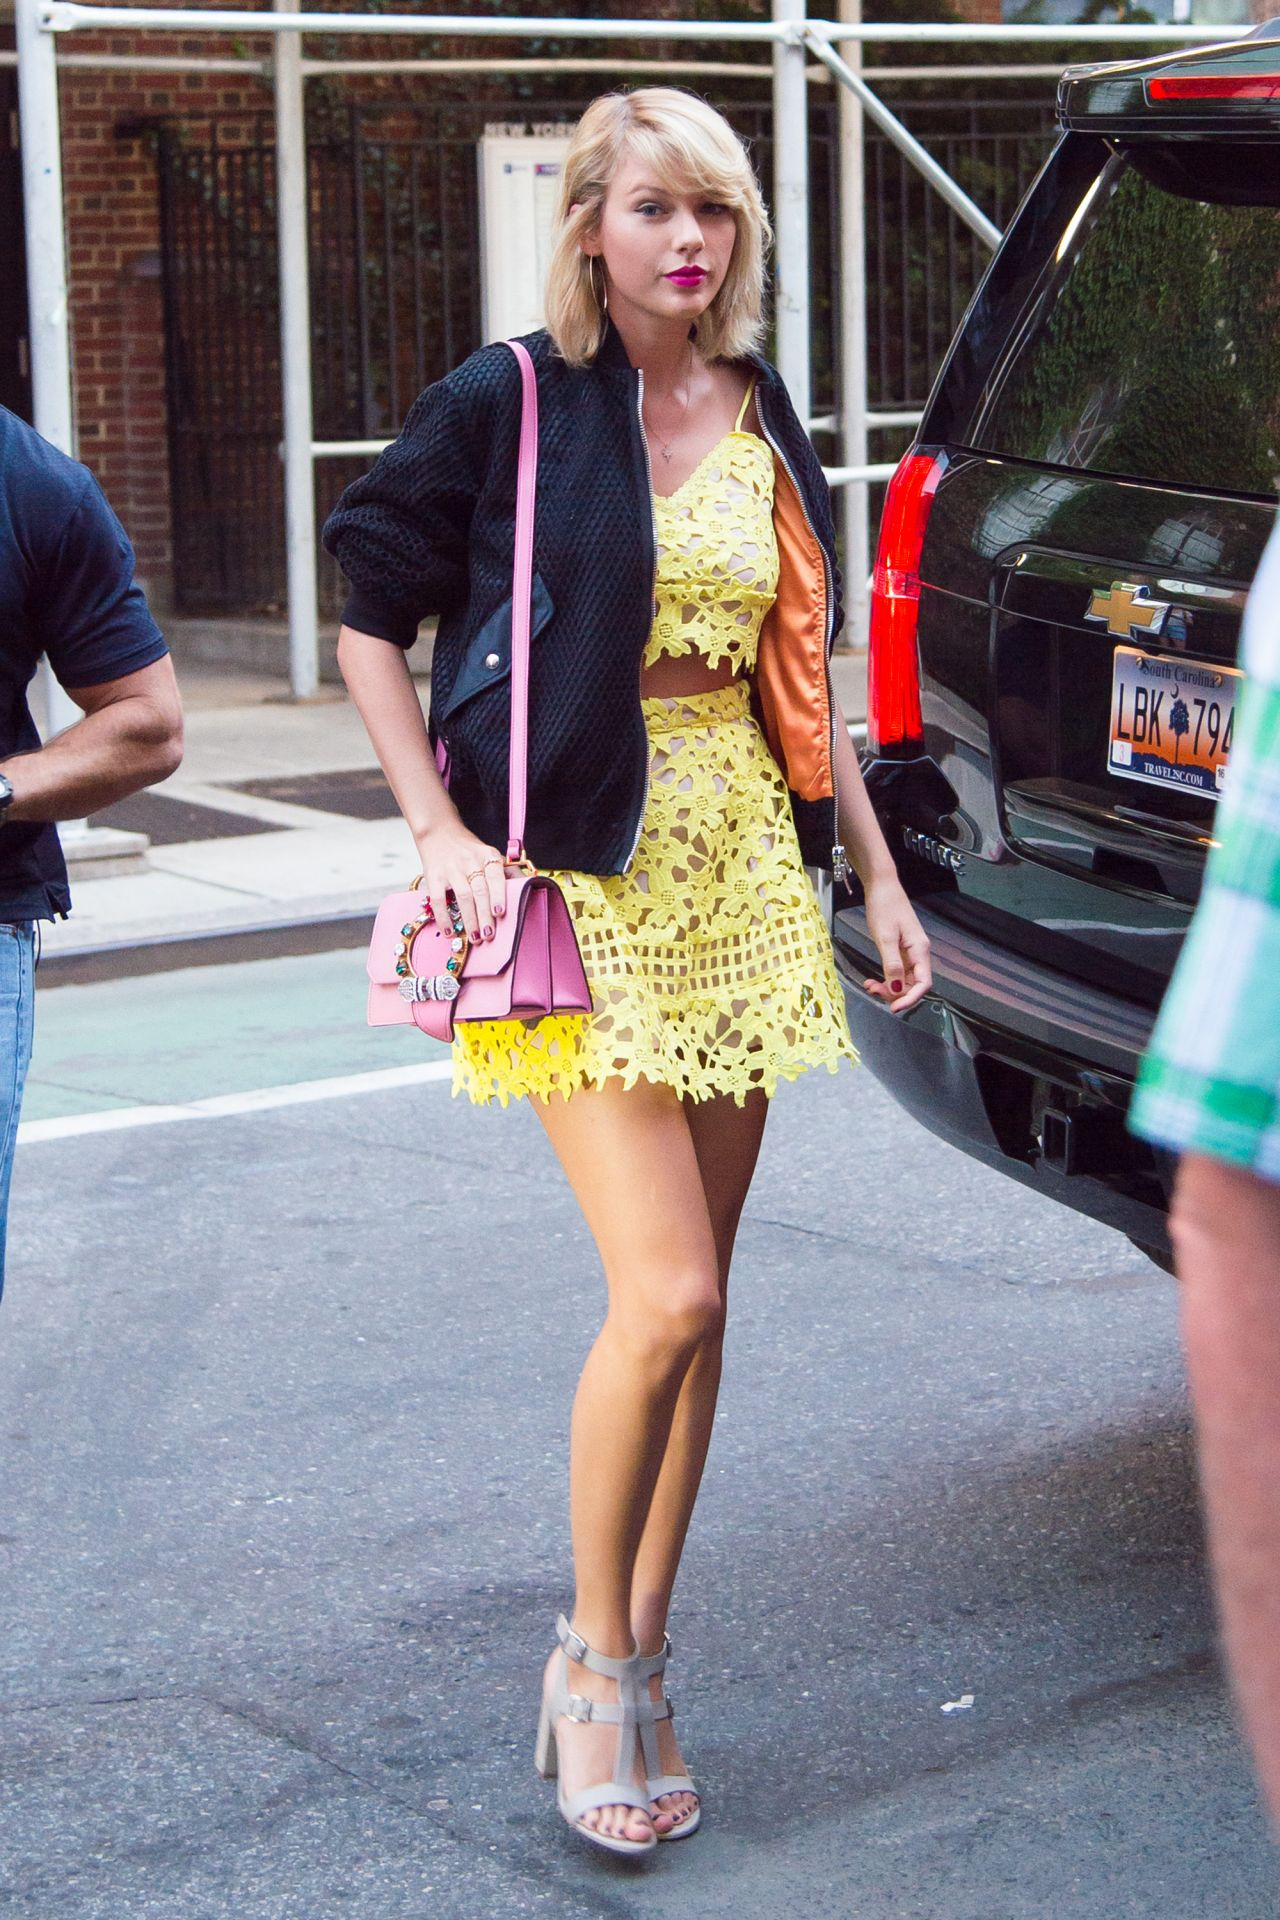 Taylor Swift Cute Outfit Ideas New York City 8242016